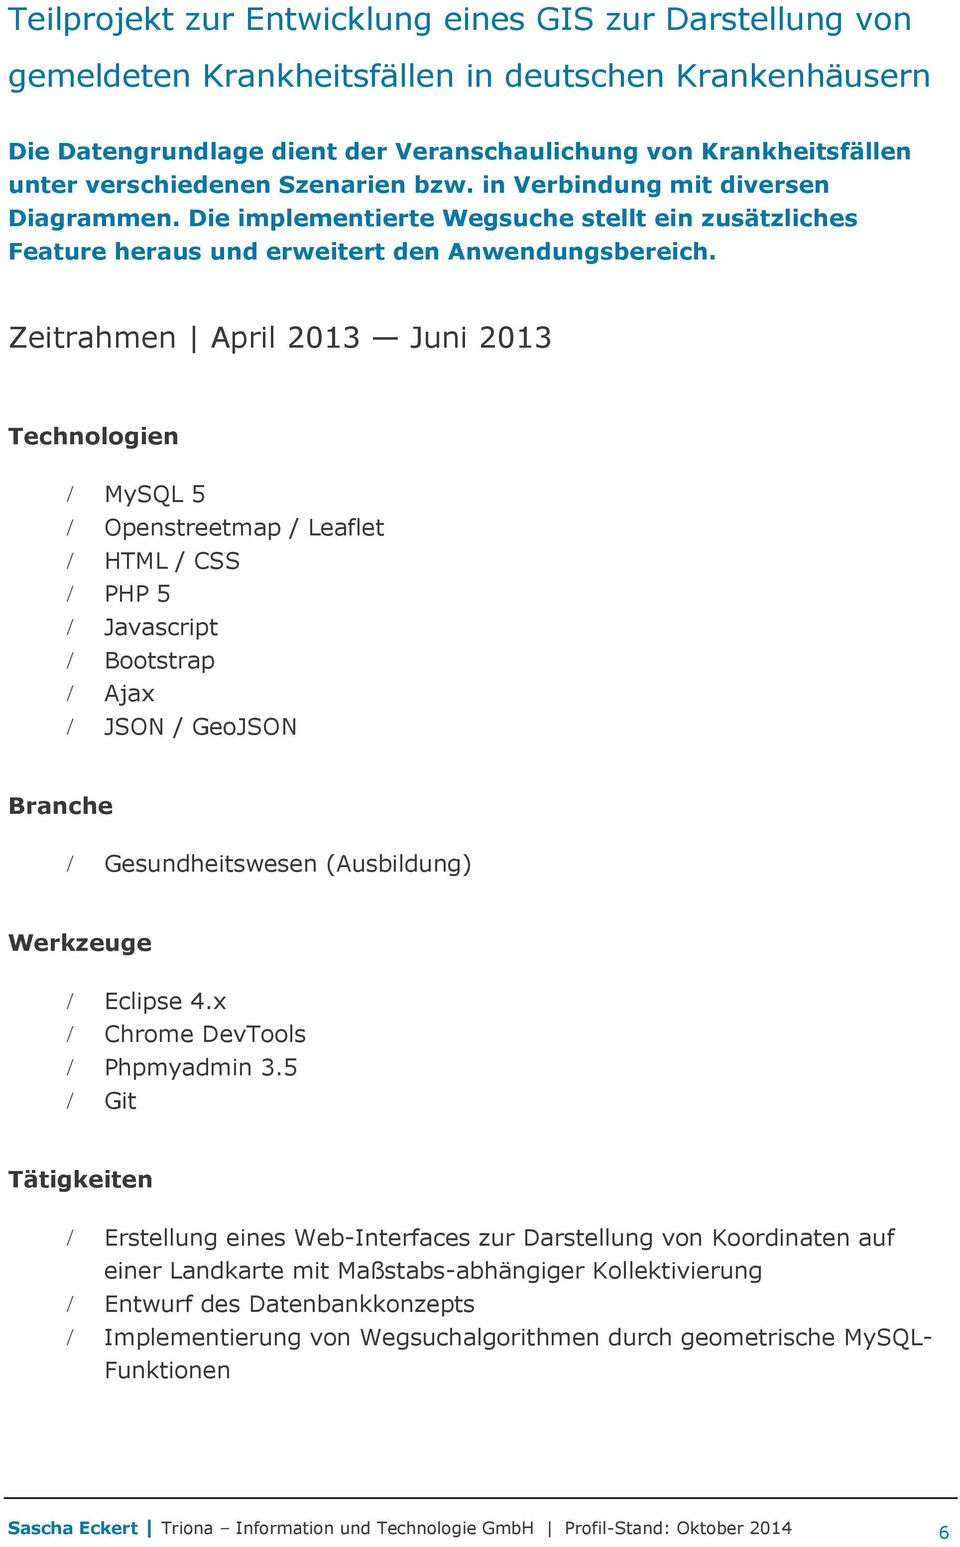 Zeitrahmen April 2013 Juni 2013 Technologien MySQL 5 Openstreetmap / Leaflet HTML / CSS PHP 5 Javascript Bootstrap Ajax JSON / GeoJSON Gesundheitswesen (Ausbildung) Eclipse 4.